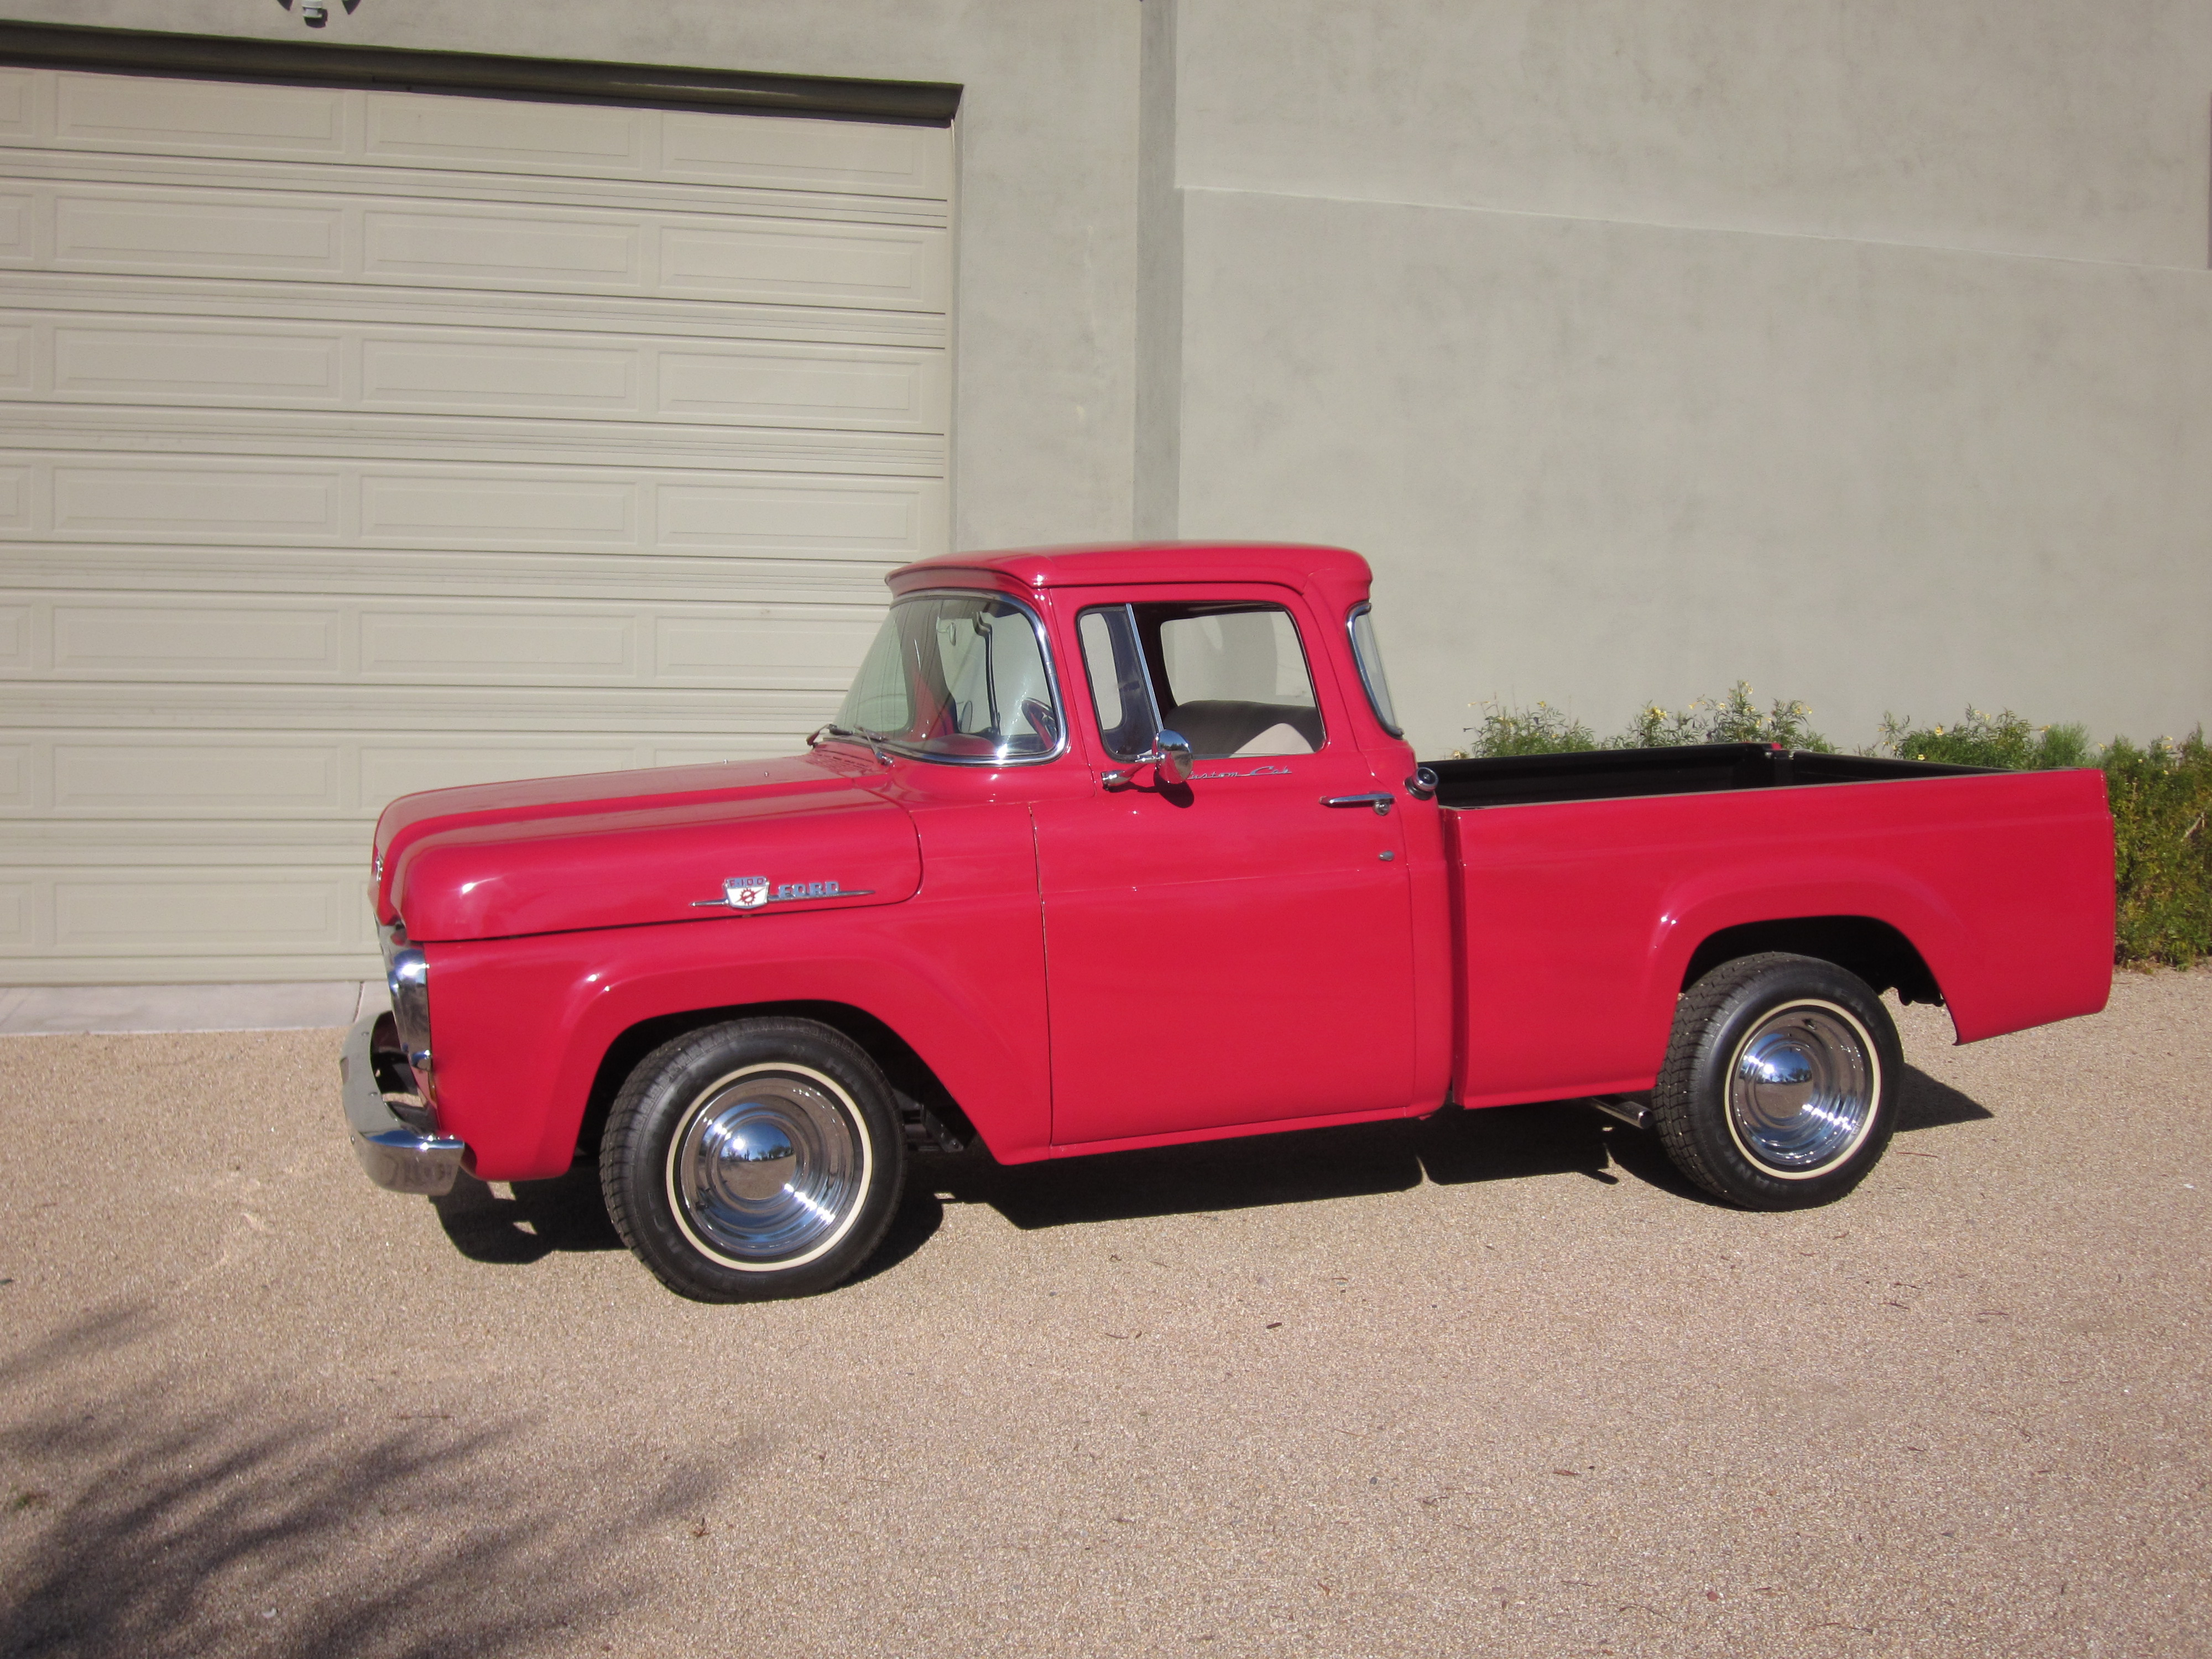 1959 Ford Truck